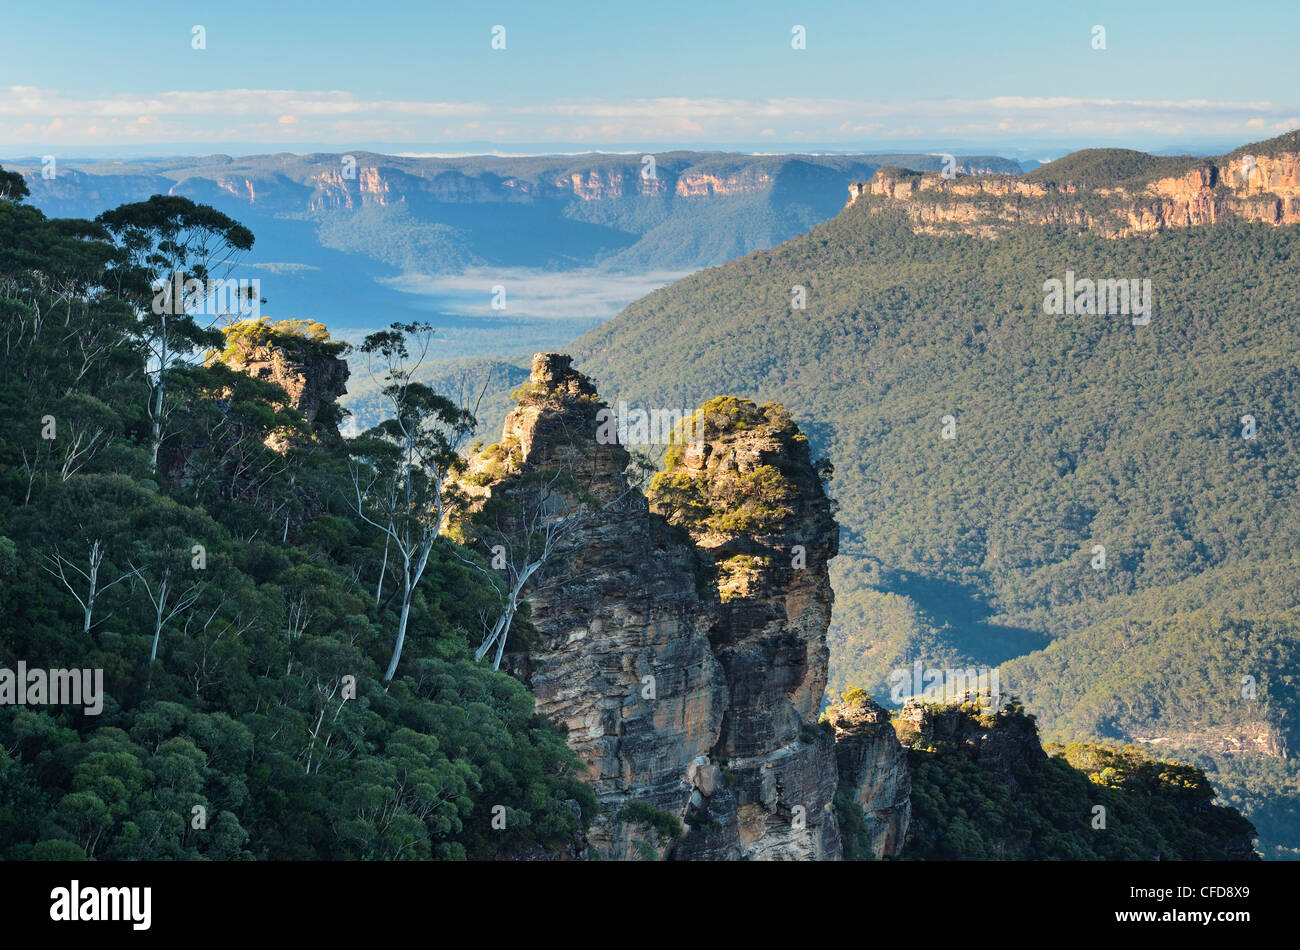 The,Sisters and Jamison Valley, Blue Mountains, Blue Mountains National Park, New South Wales, Australia - Stock Image